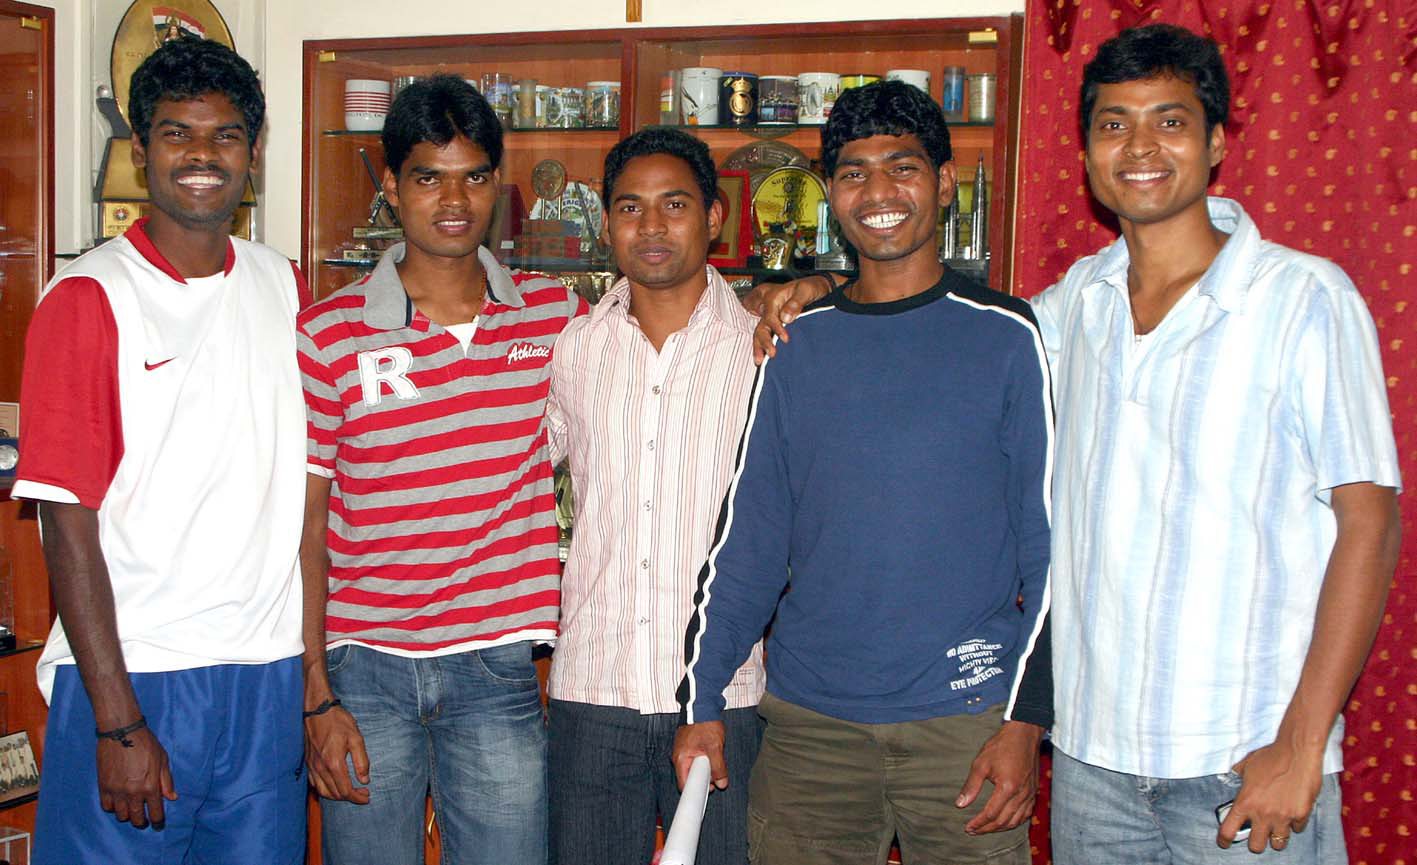 Hockey stars of Orissa (Left to right): Ignace Tirkey, Prabodh Tirkey, Roshan Minz, William Xalxo and Dilip Tirkey in Bhubaneswar in 2008.